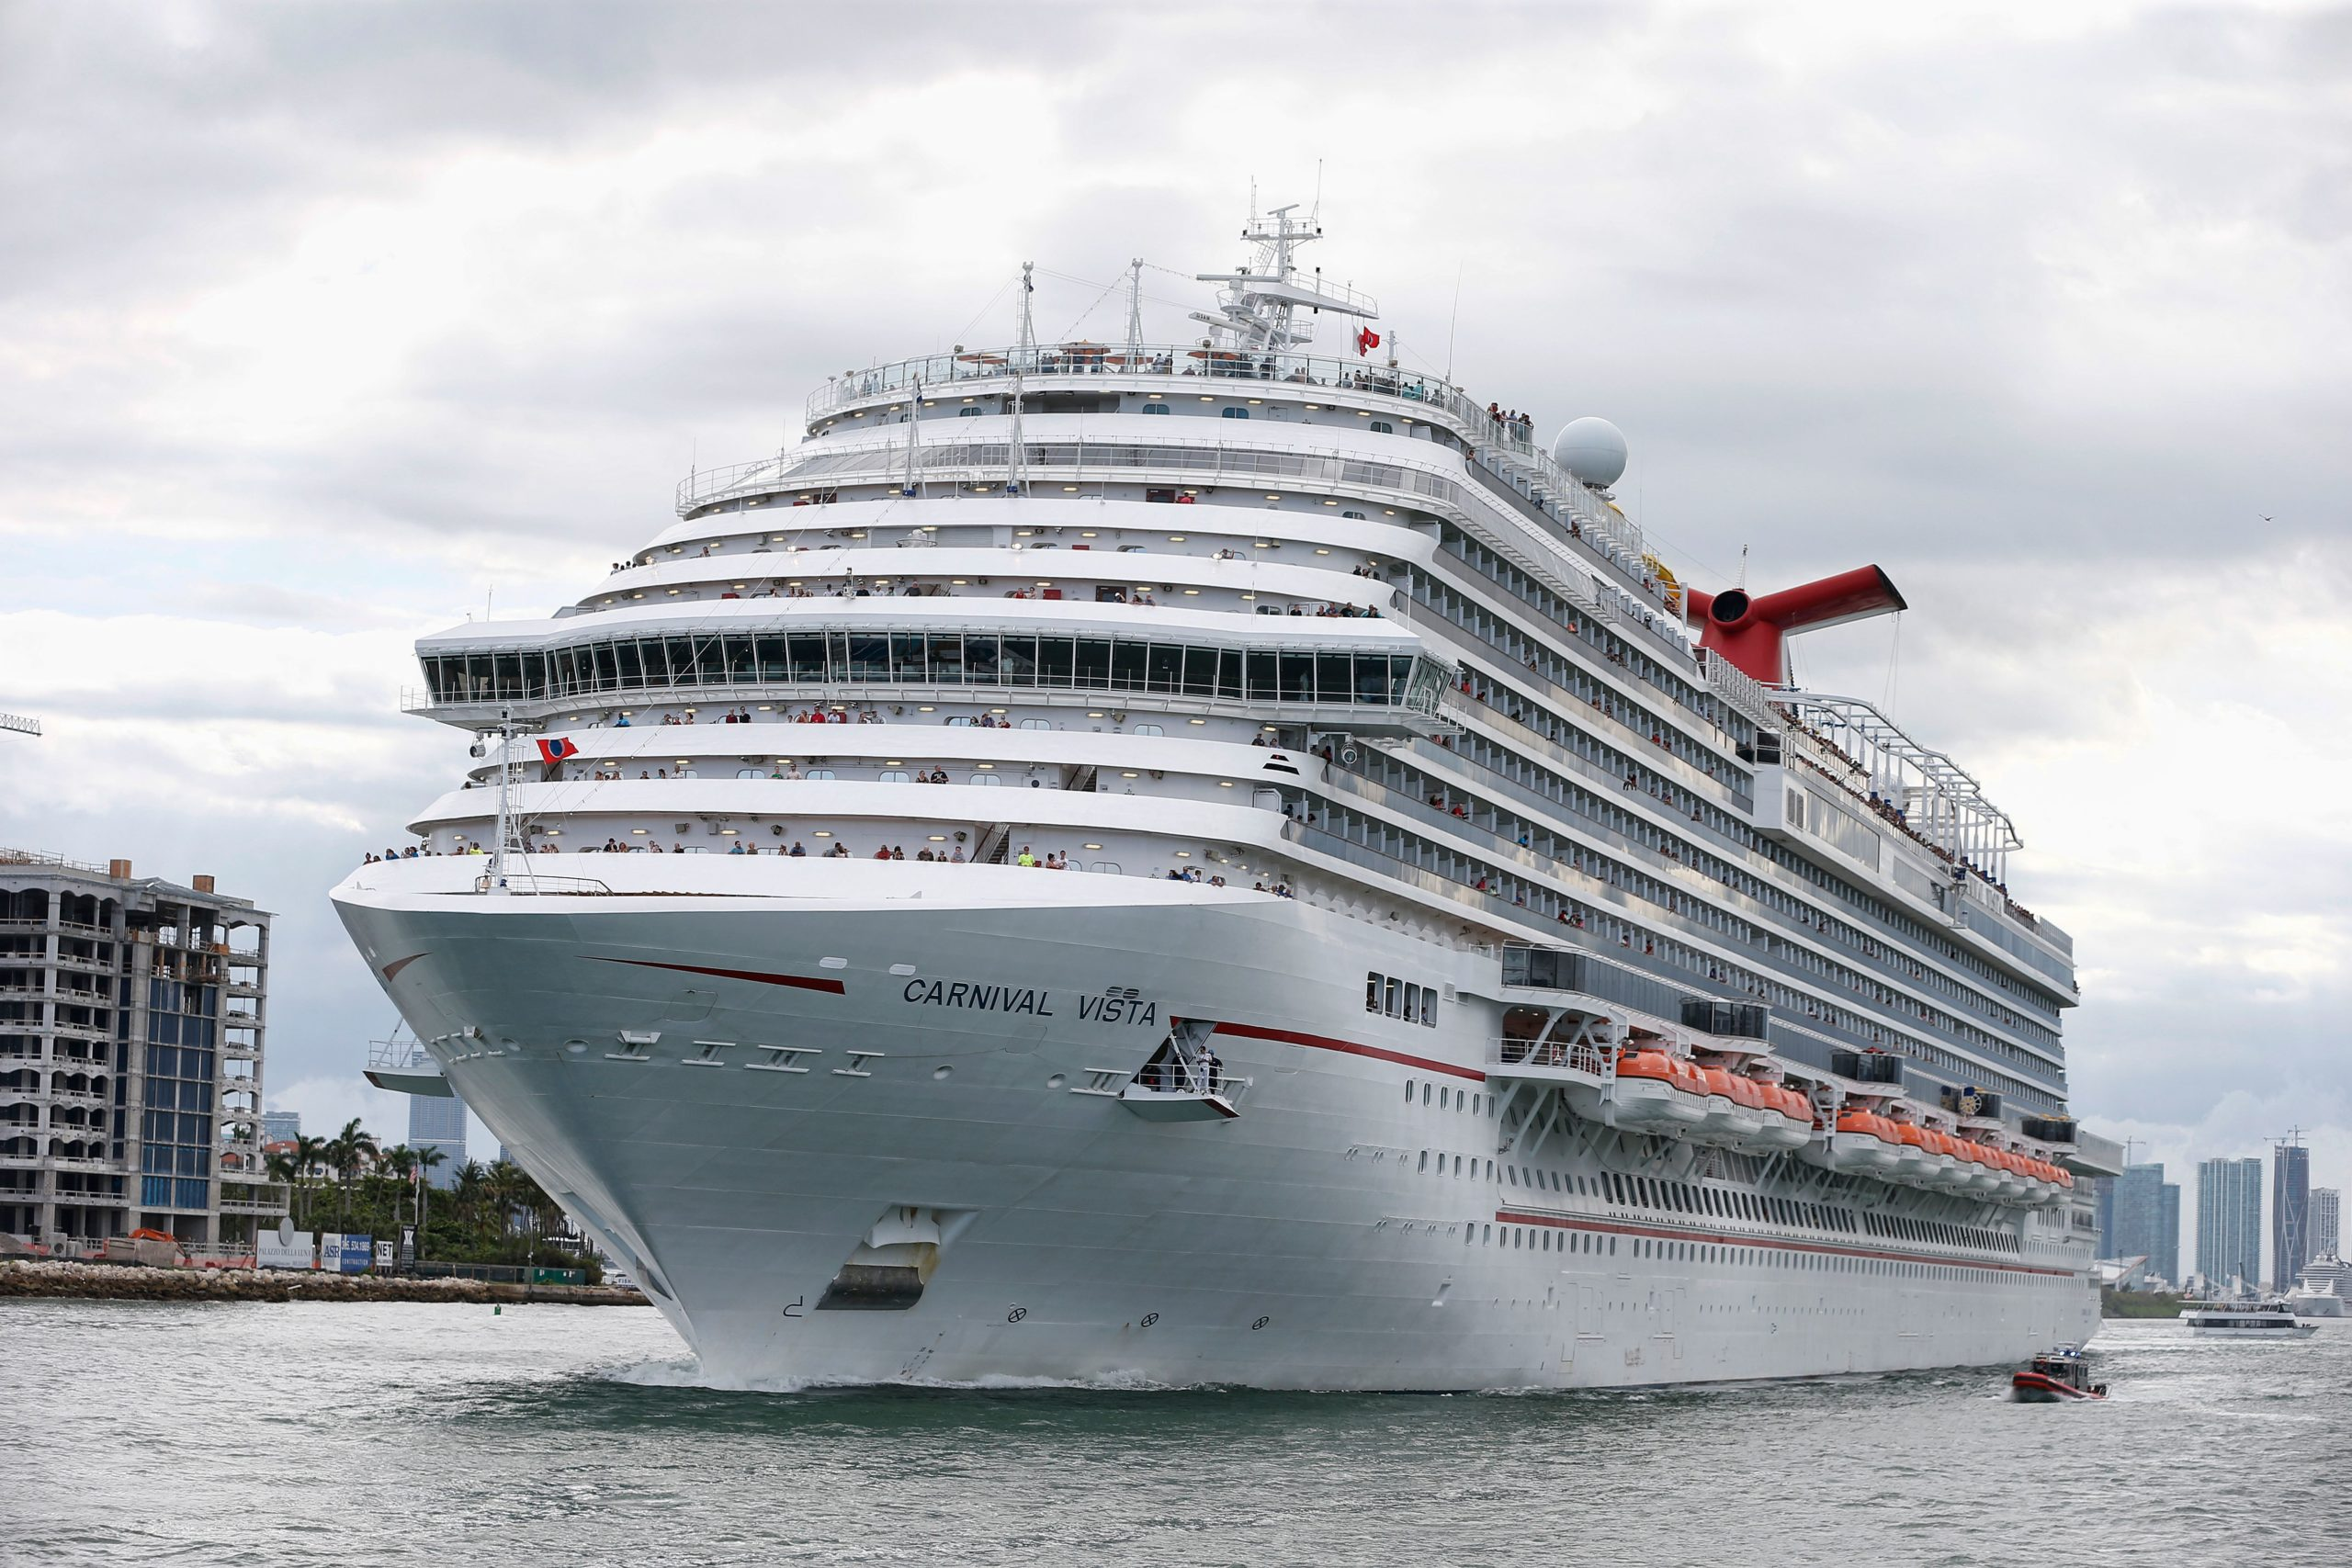 The Carnival Cruise Ship 'Carnival Vista' heads out to sea. (Photo by RHONA WISE / AFP via Getty Images)